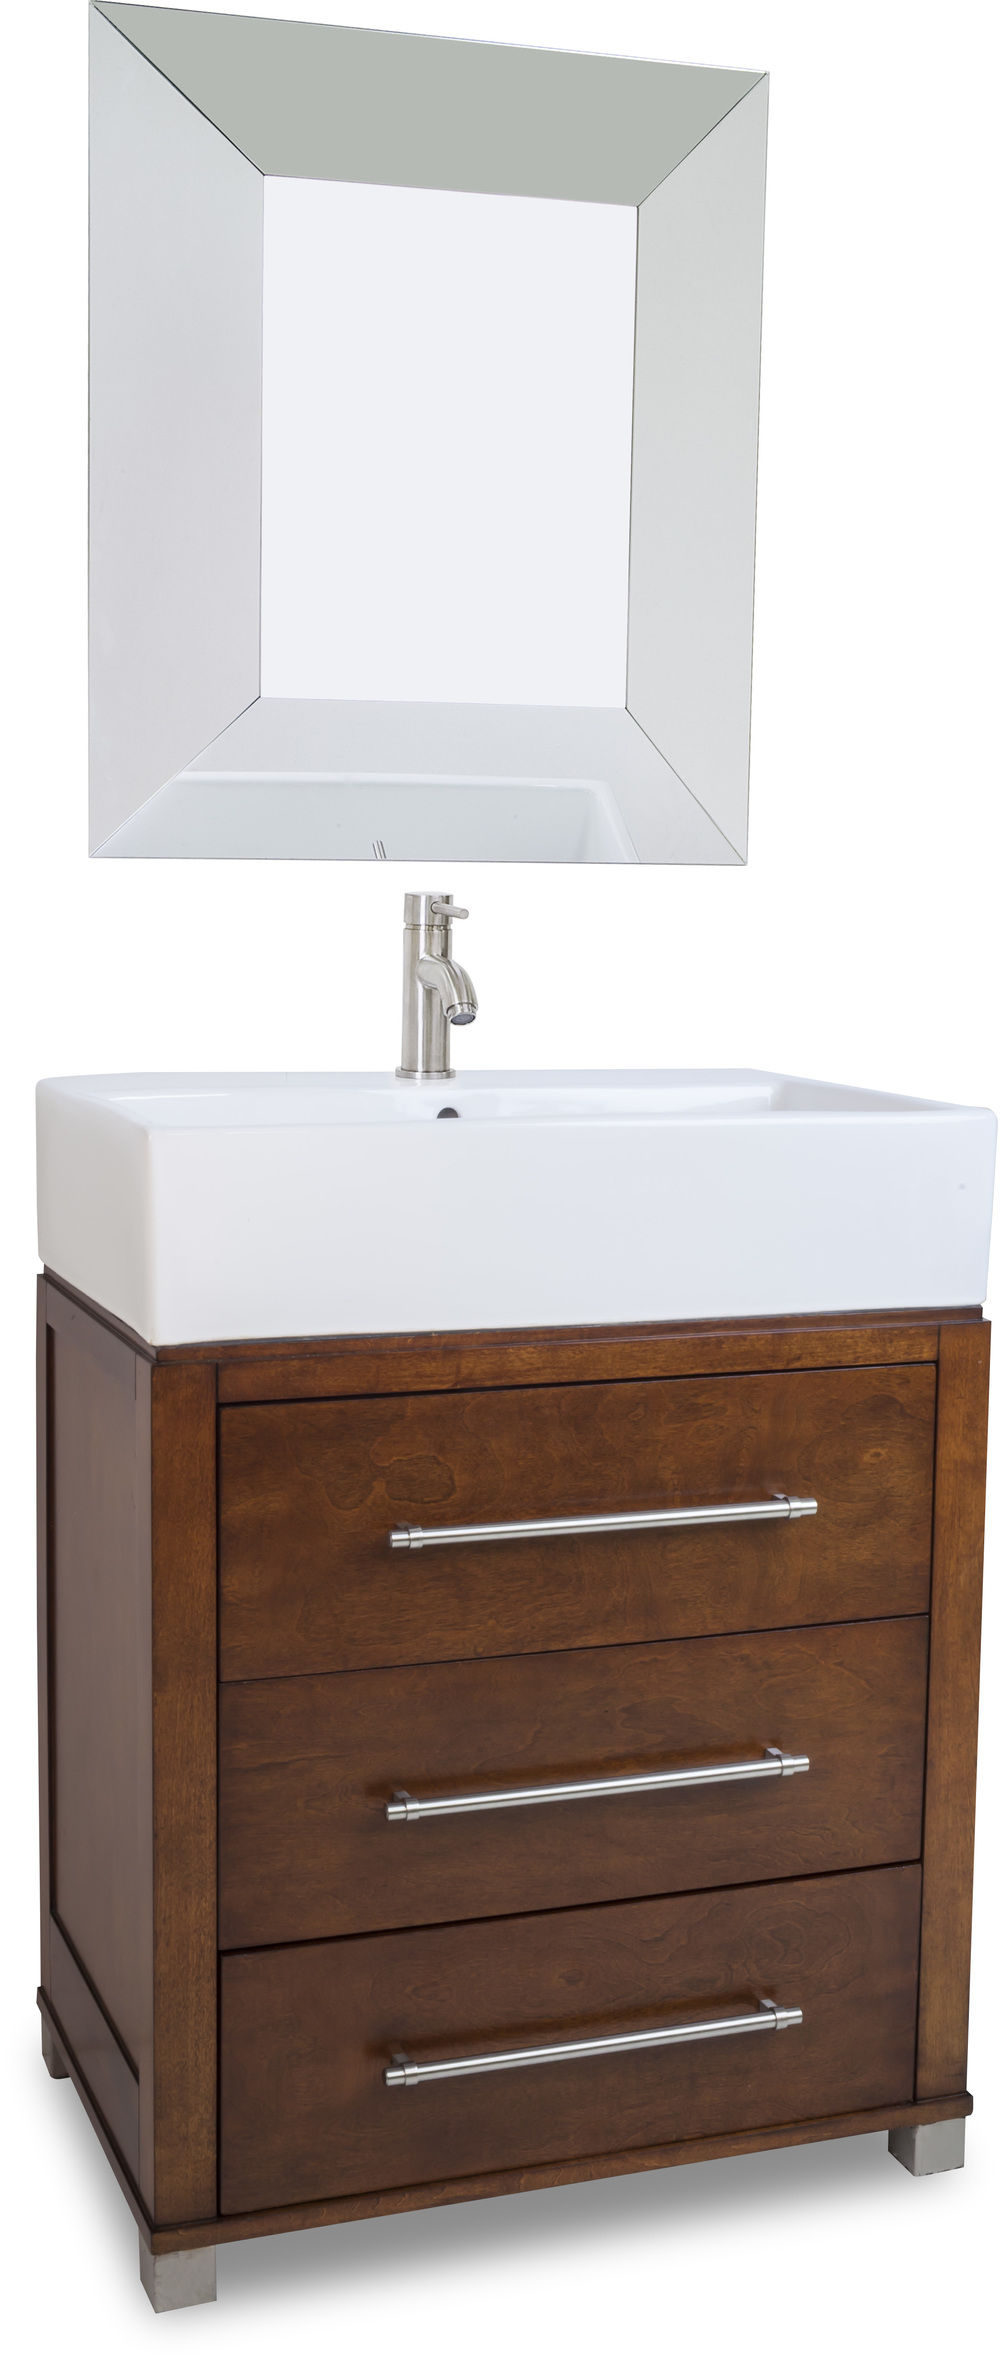 Briggs Vessel Sink & Vanity, Courtesy Hardware Resources